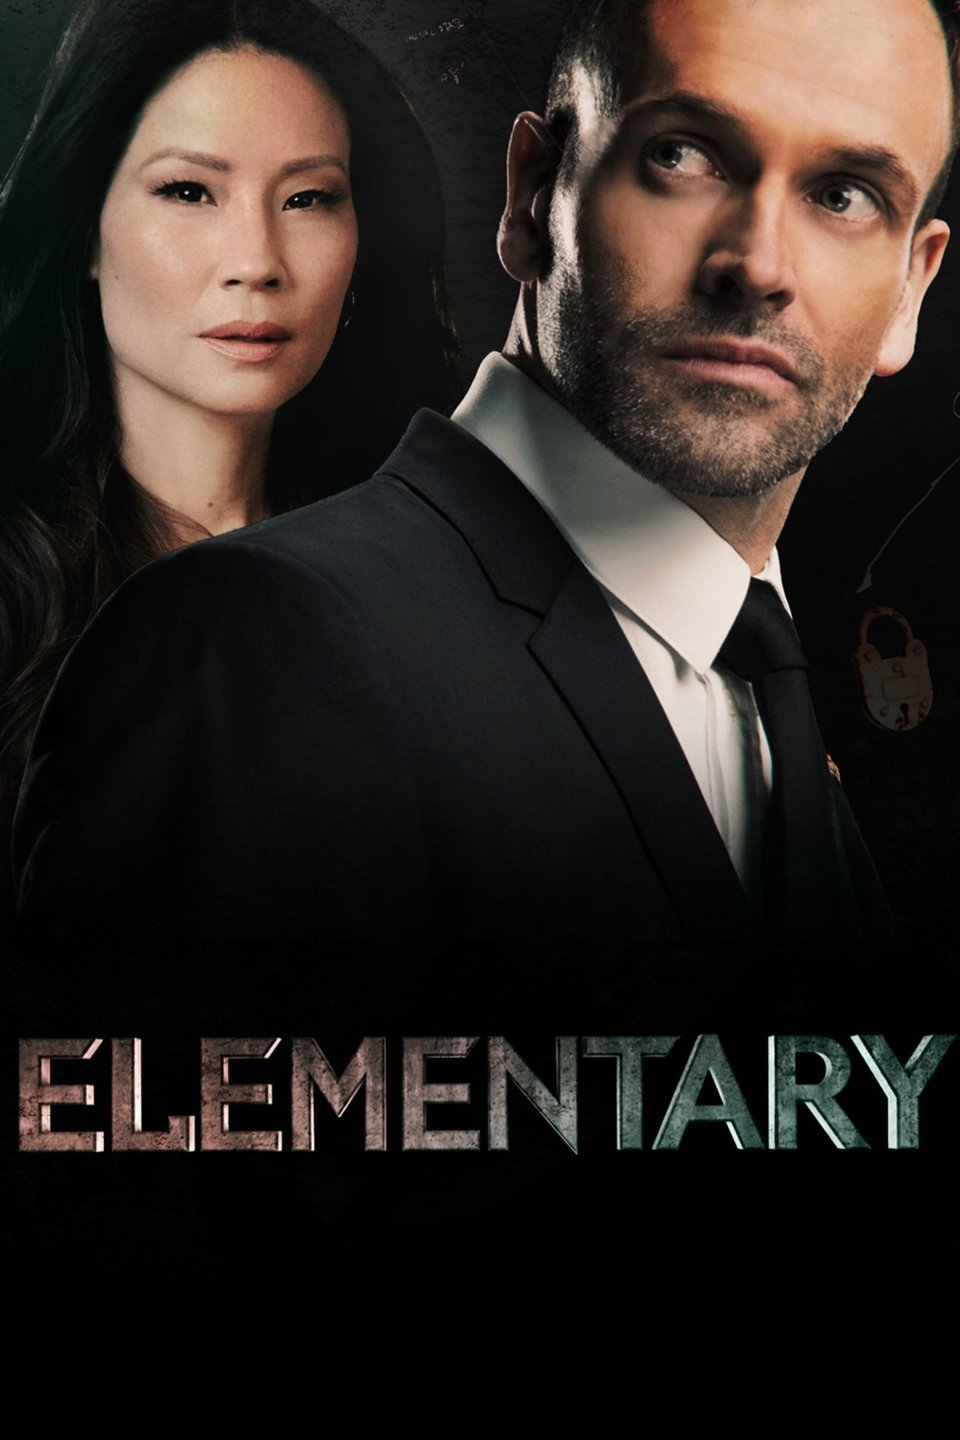 Elementary Season 6 Download HDTV (Episode 16 Added)